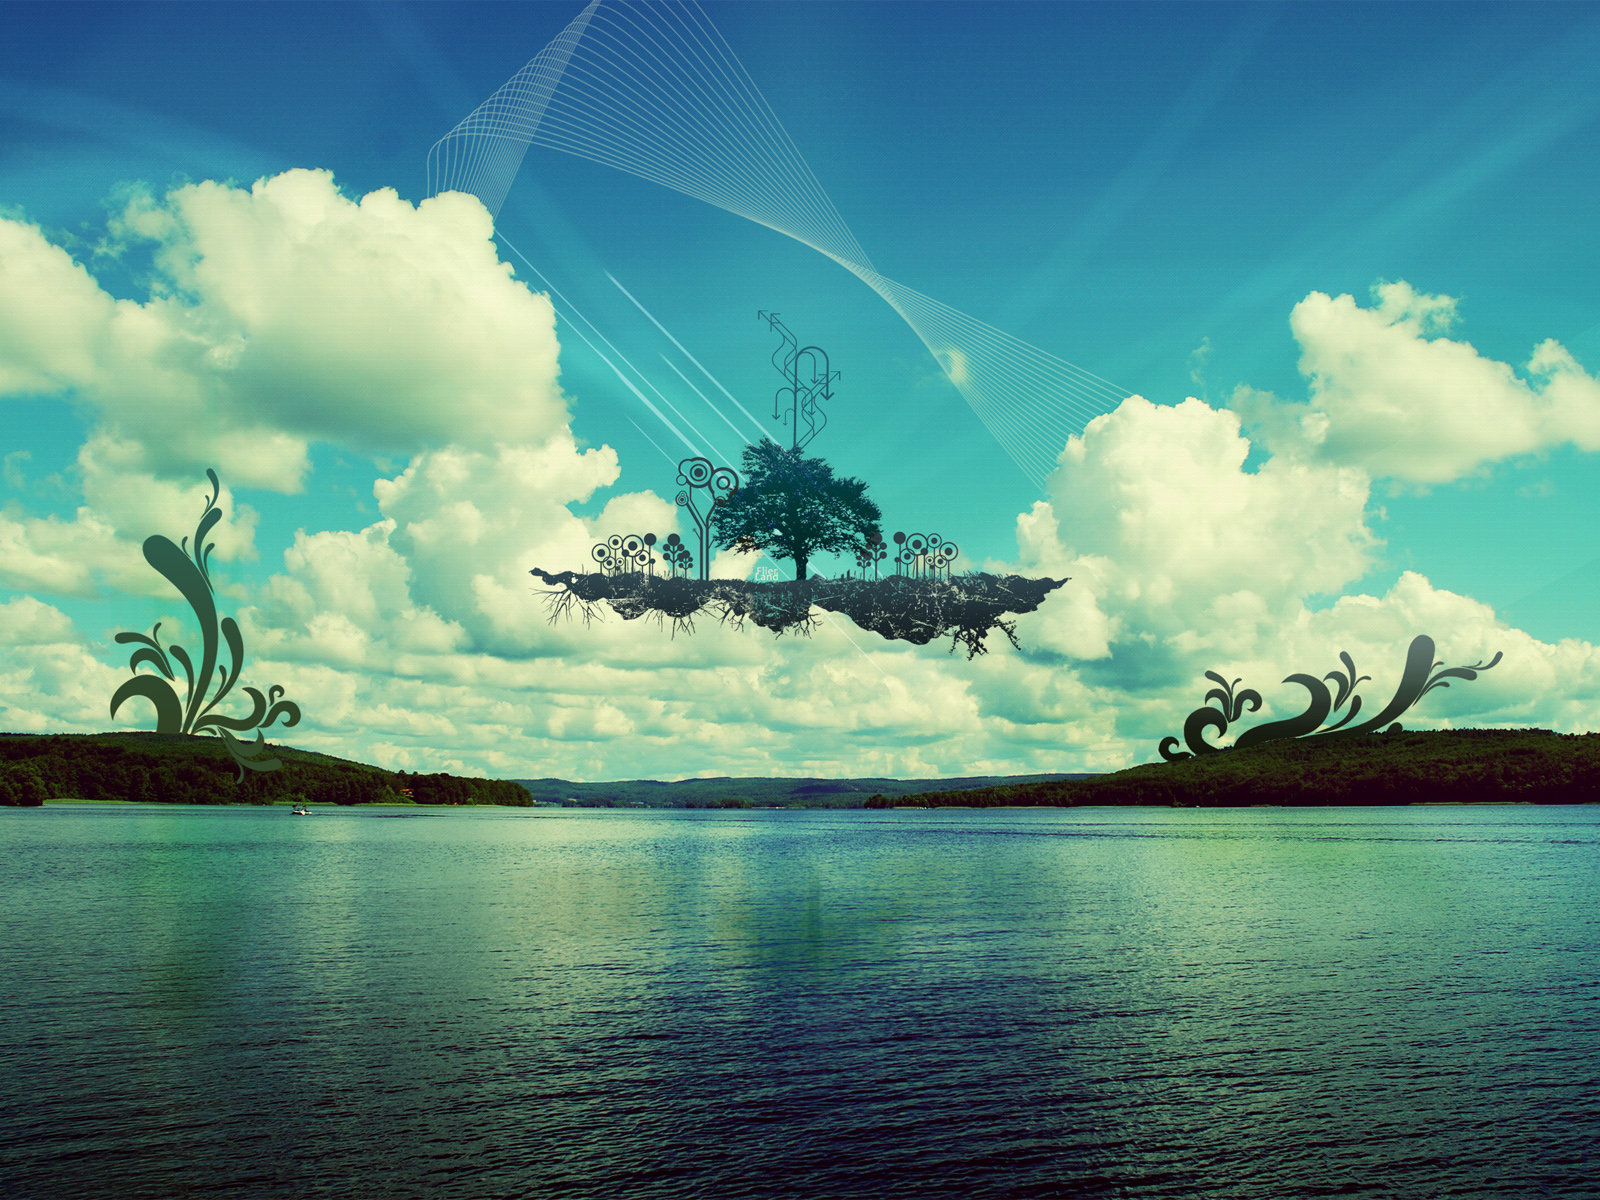 Oblivion Iphone Wallpaper Floating Island Wallpapers Floating Island Stock Photos